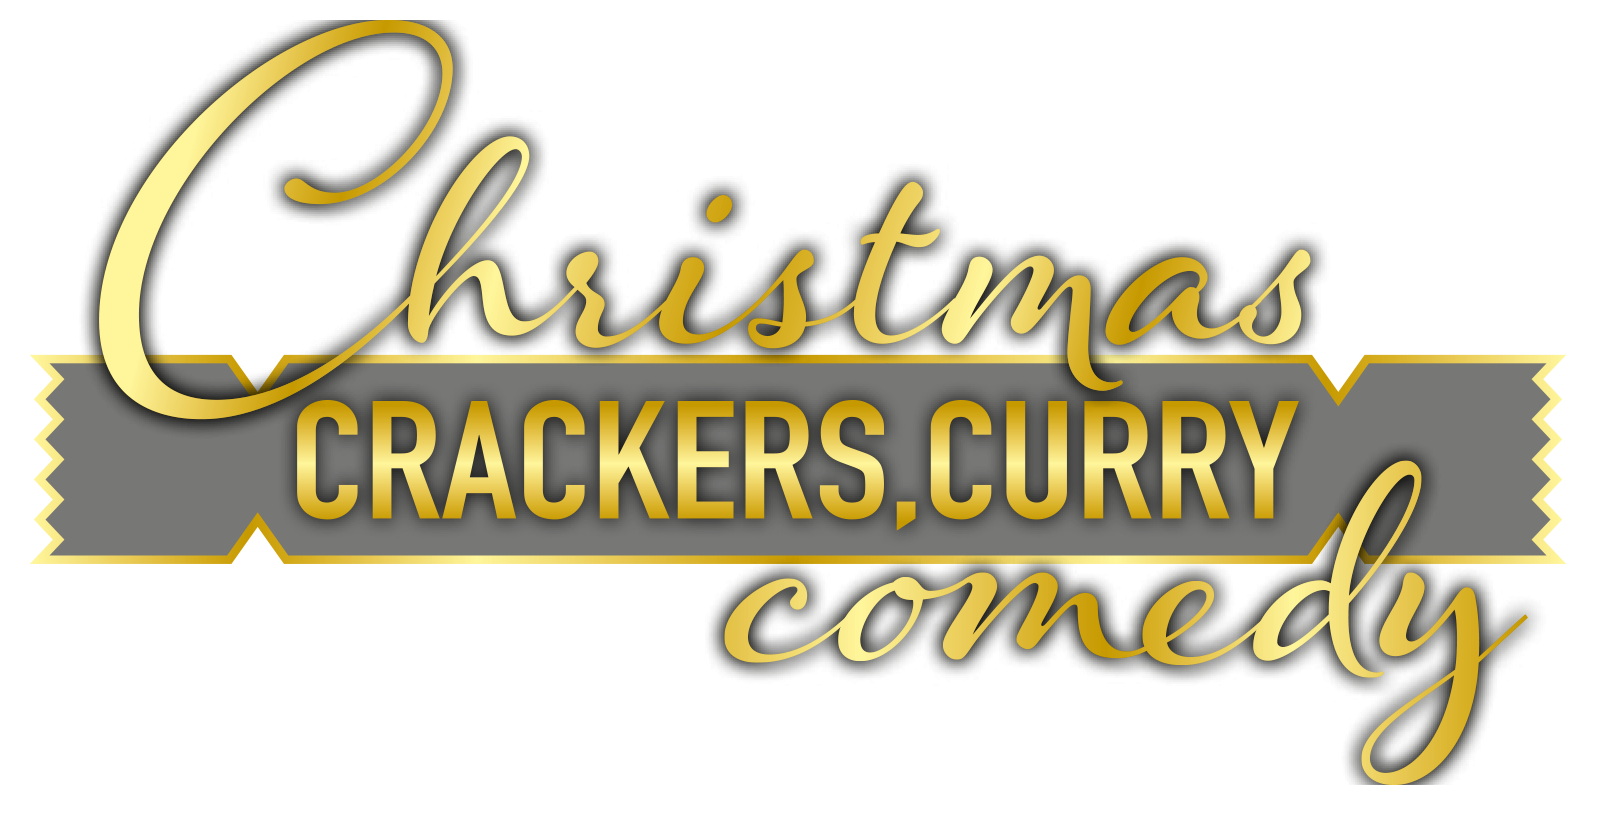 Christmas Crackers Png.Christmas Crackers Curry And Comedy Focus 4 Hope Focus